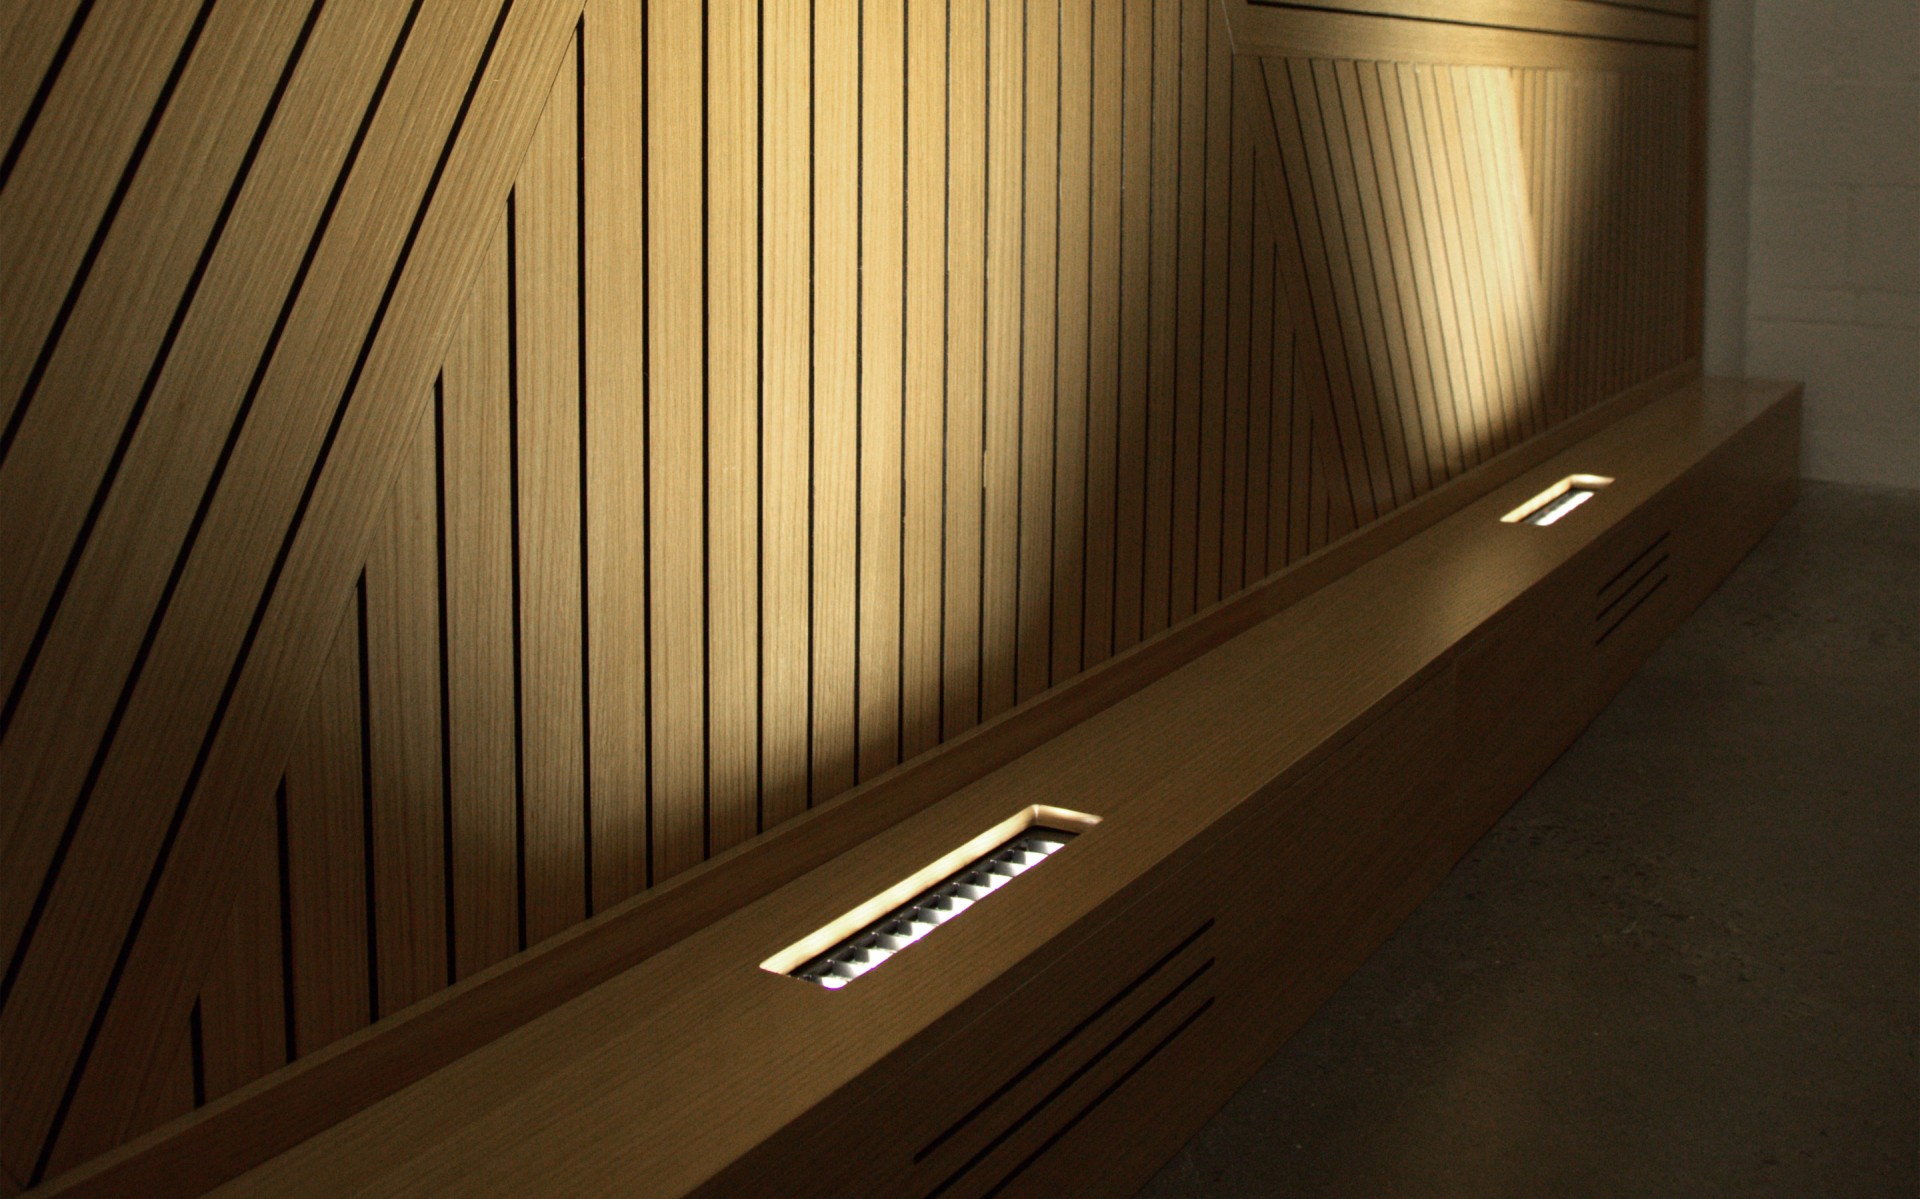 The wood paneling in the open office area is uplit using Lumenfacade luminaires.